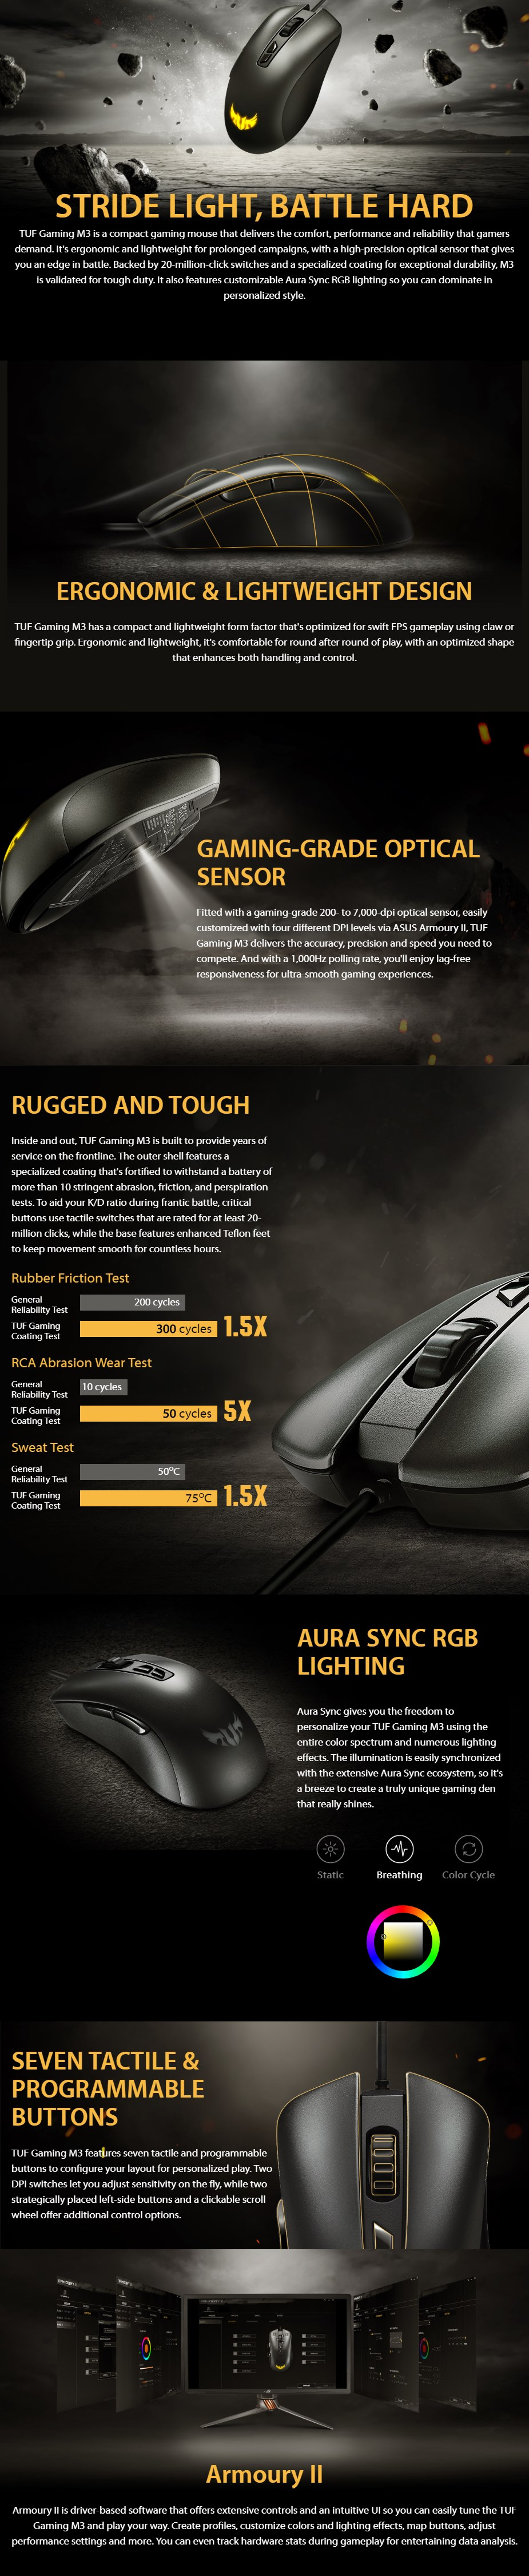 ASUS TUF Gaming M3 Optical Gaming Mouse - Overview 1